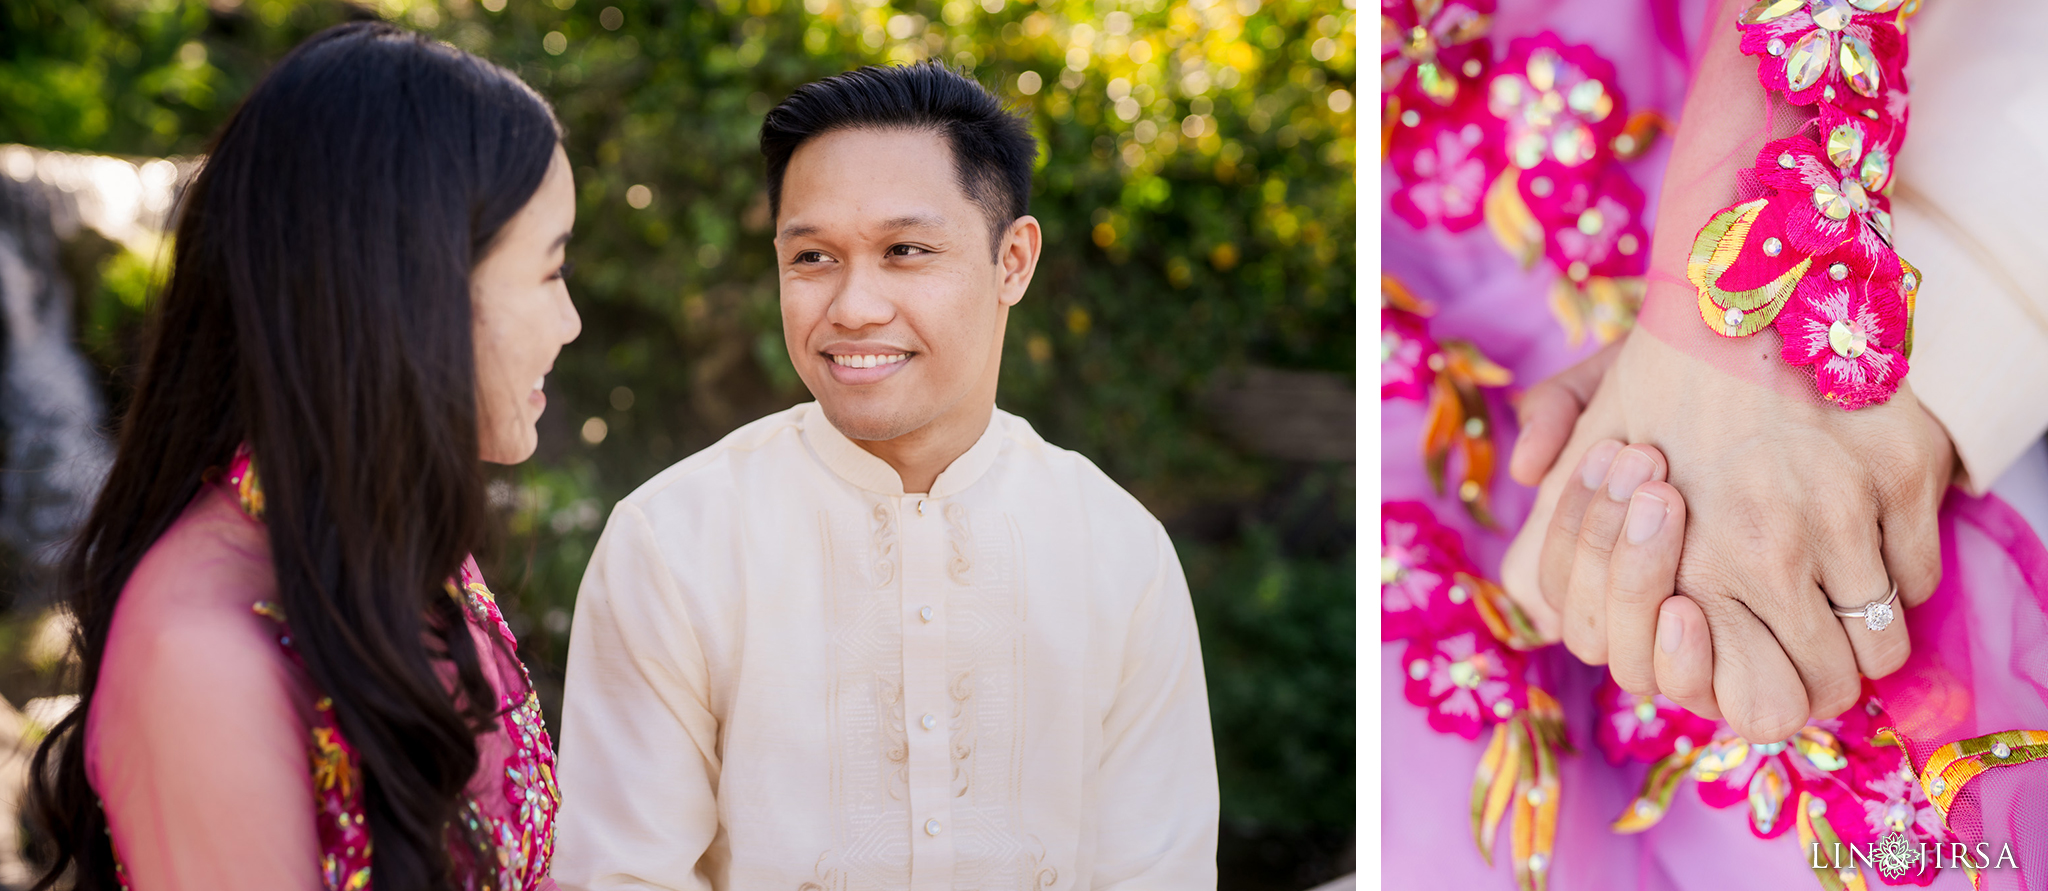 03 Los Angeles Arboretum Spring Engagement Photography